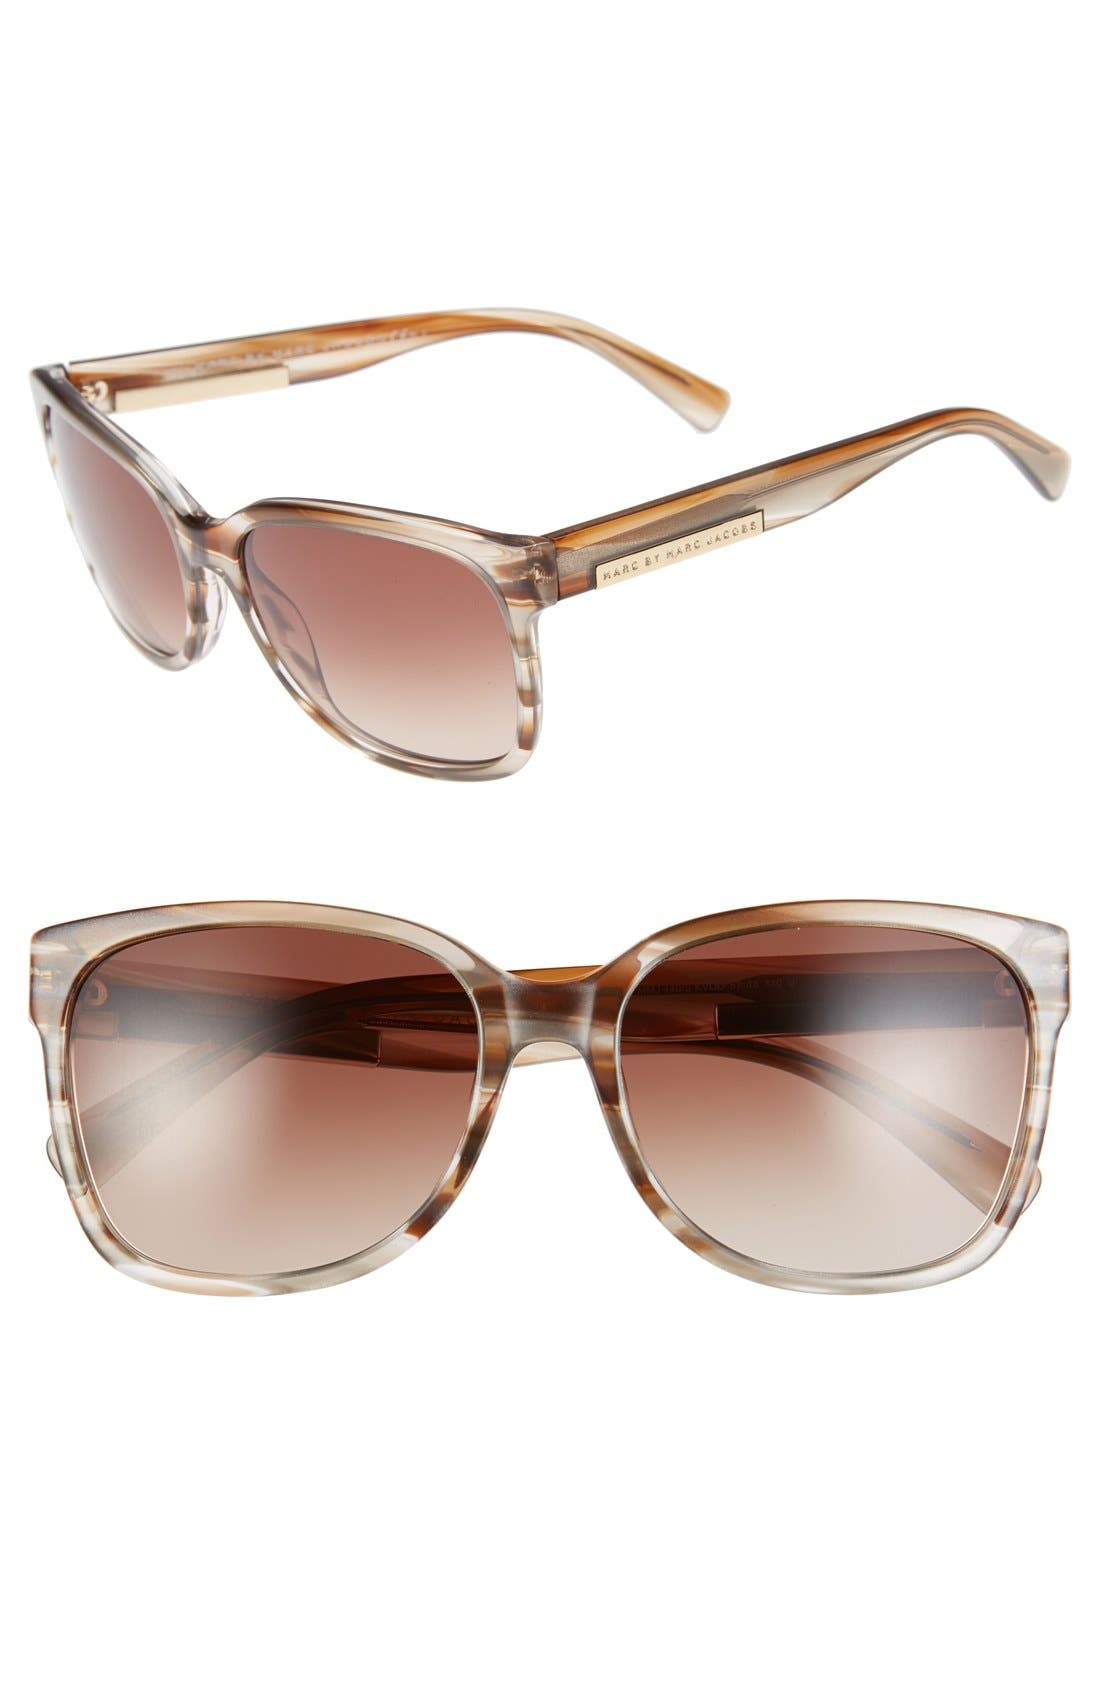 Main Image - MARC BY MARC JACOBS 57mm Retro Sunglasses